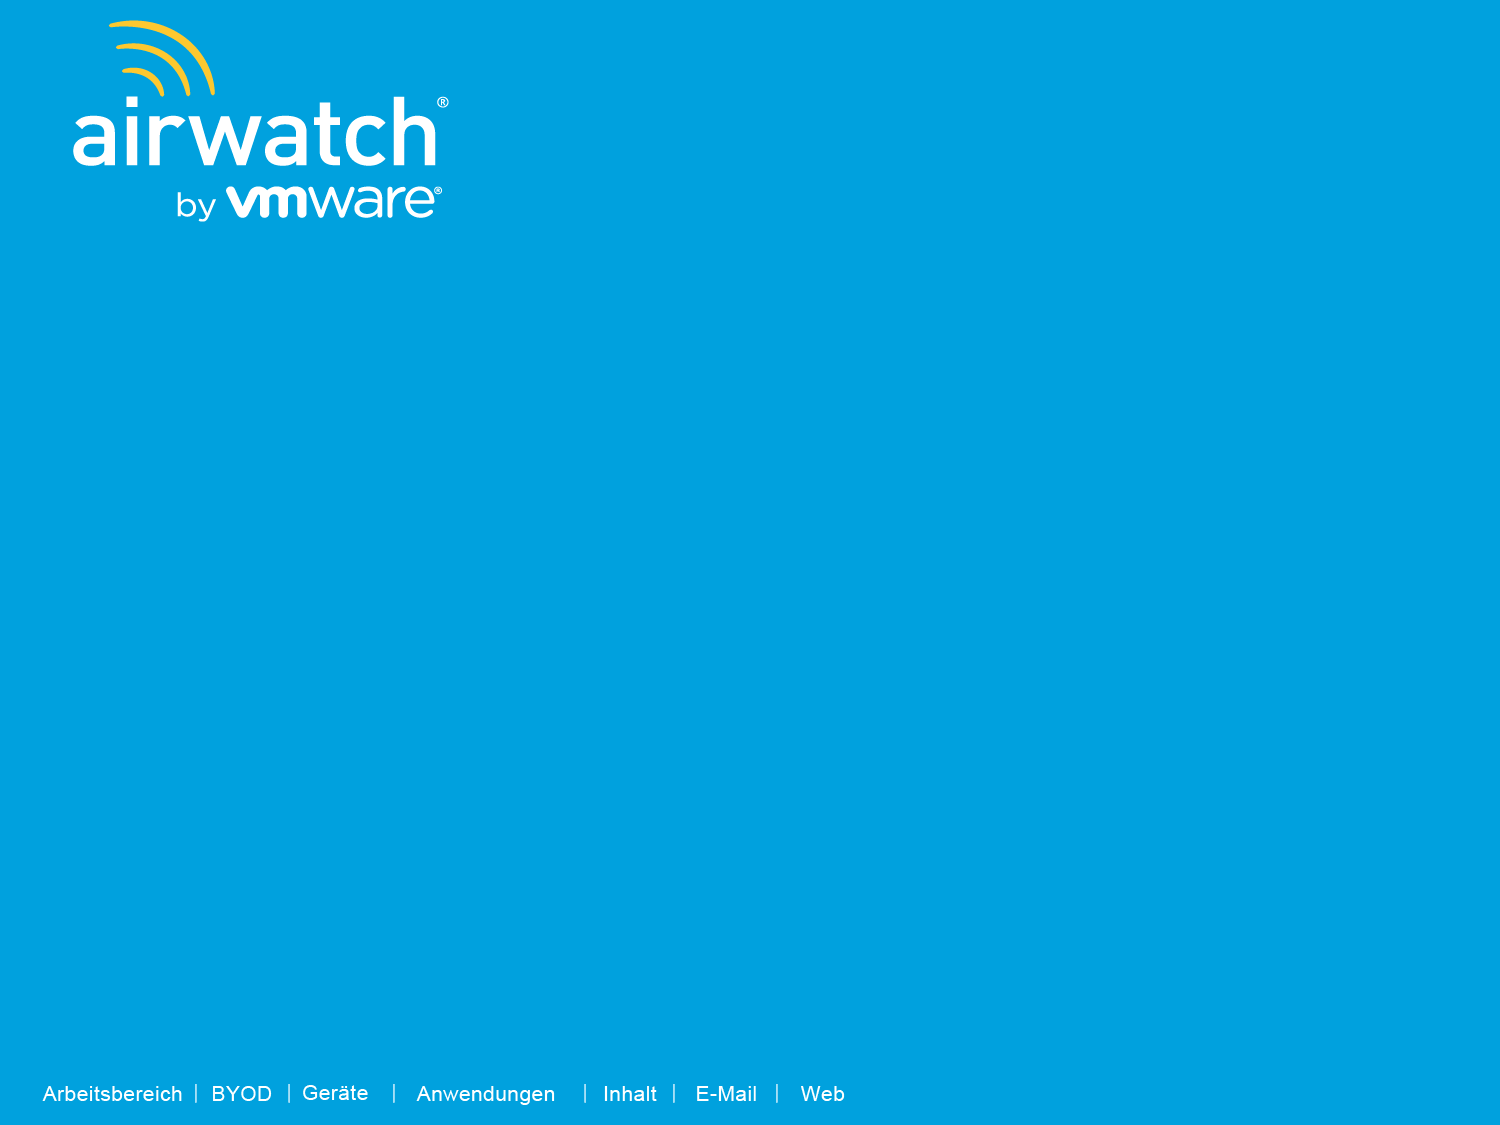 Das neue AirWatch by VMware: